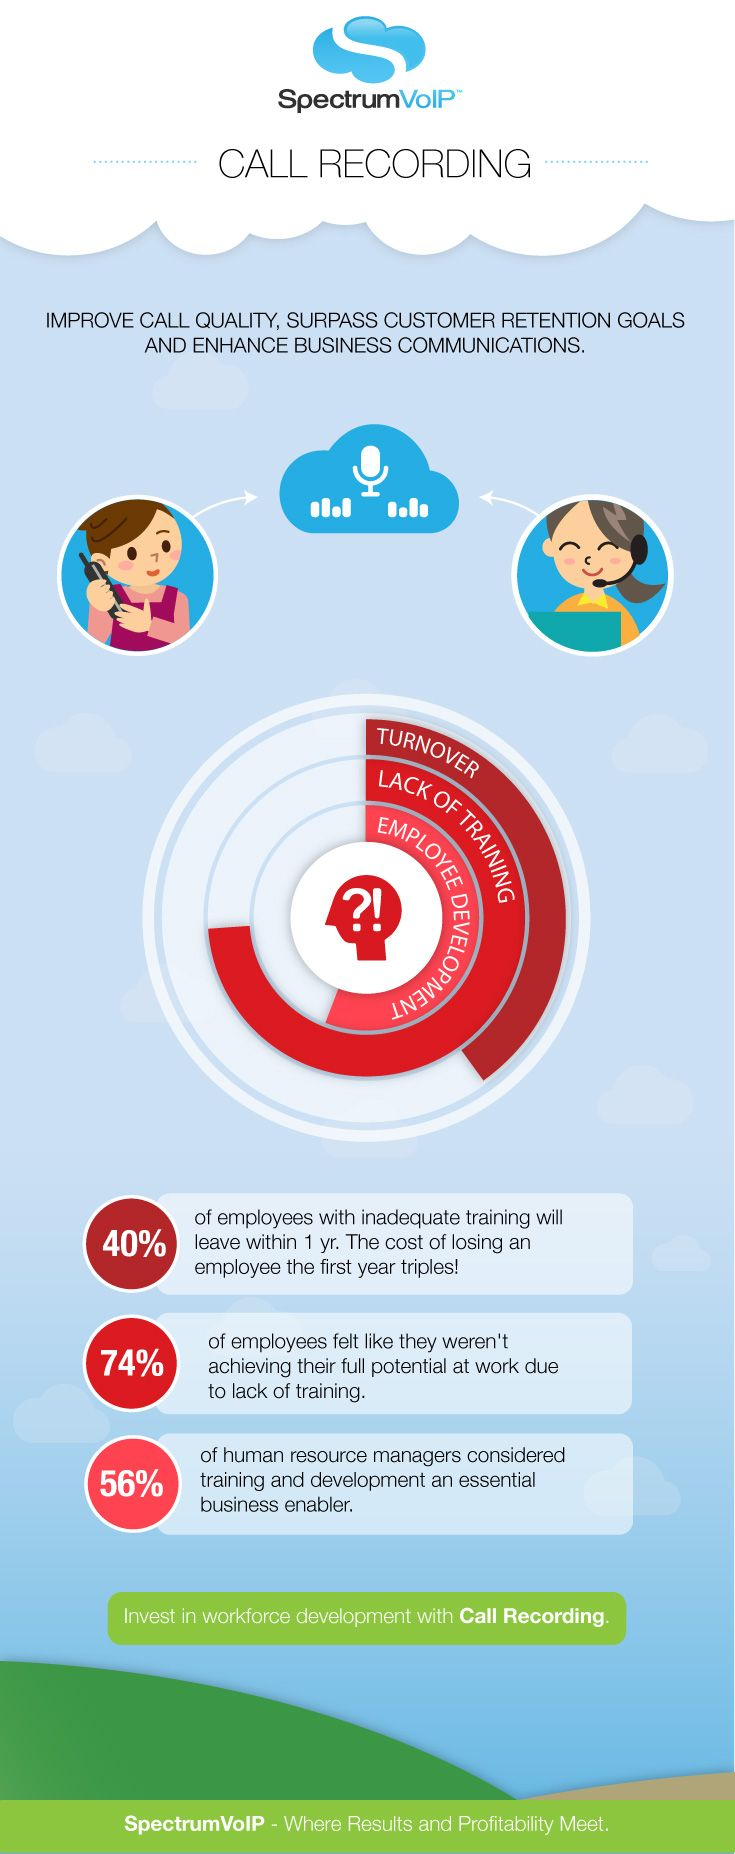 Did you know that 40 of employees with inadequate